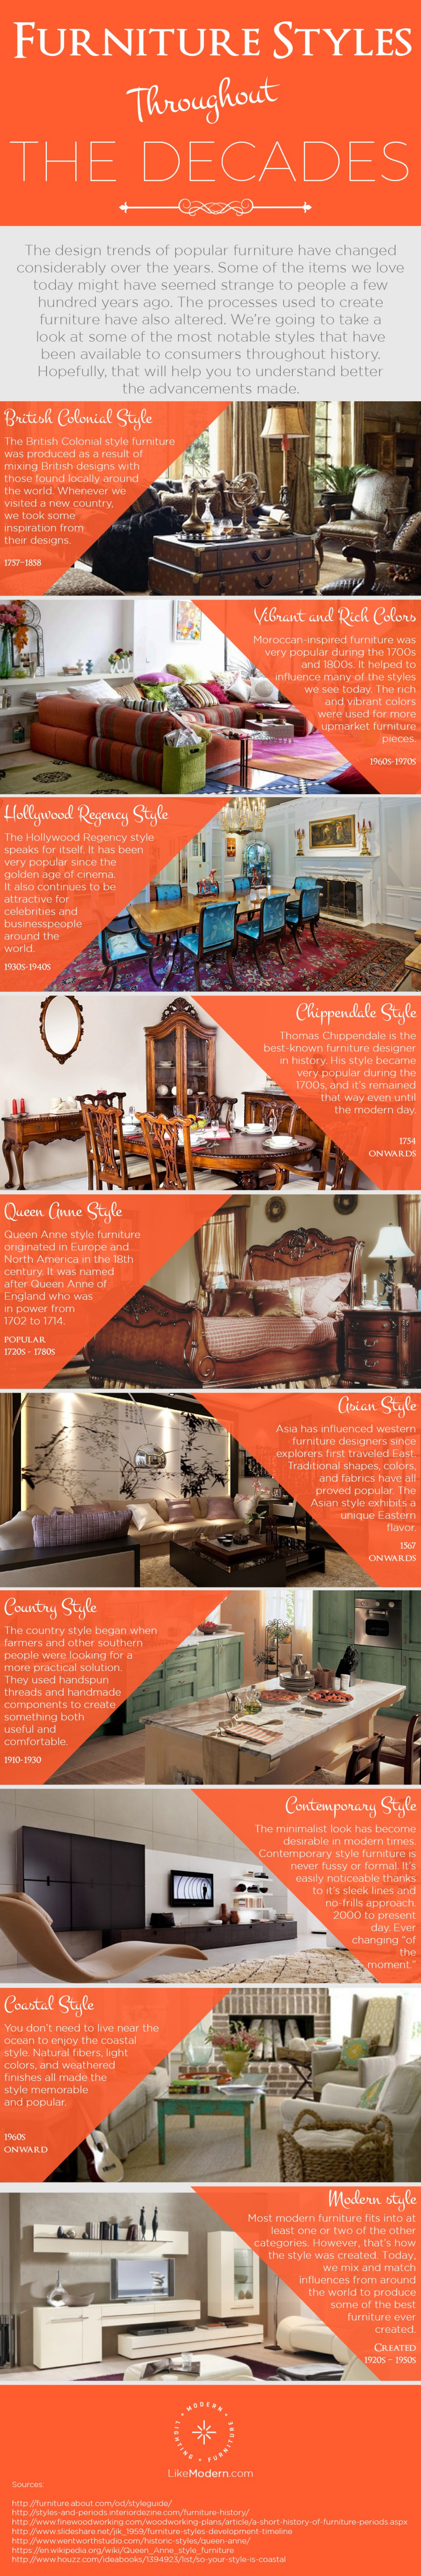 Furniture Styles Throughout the Decades  Infographic